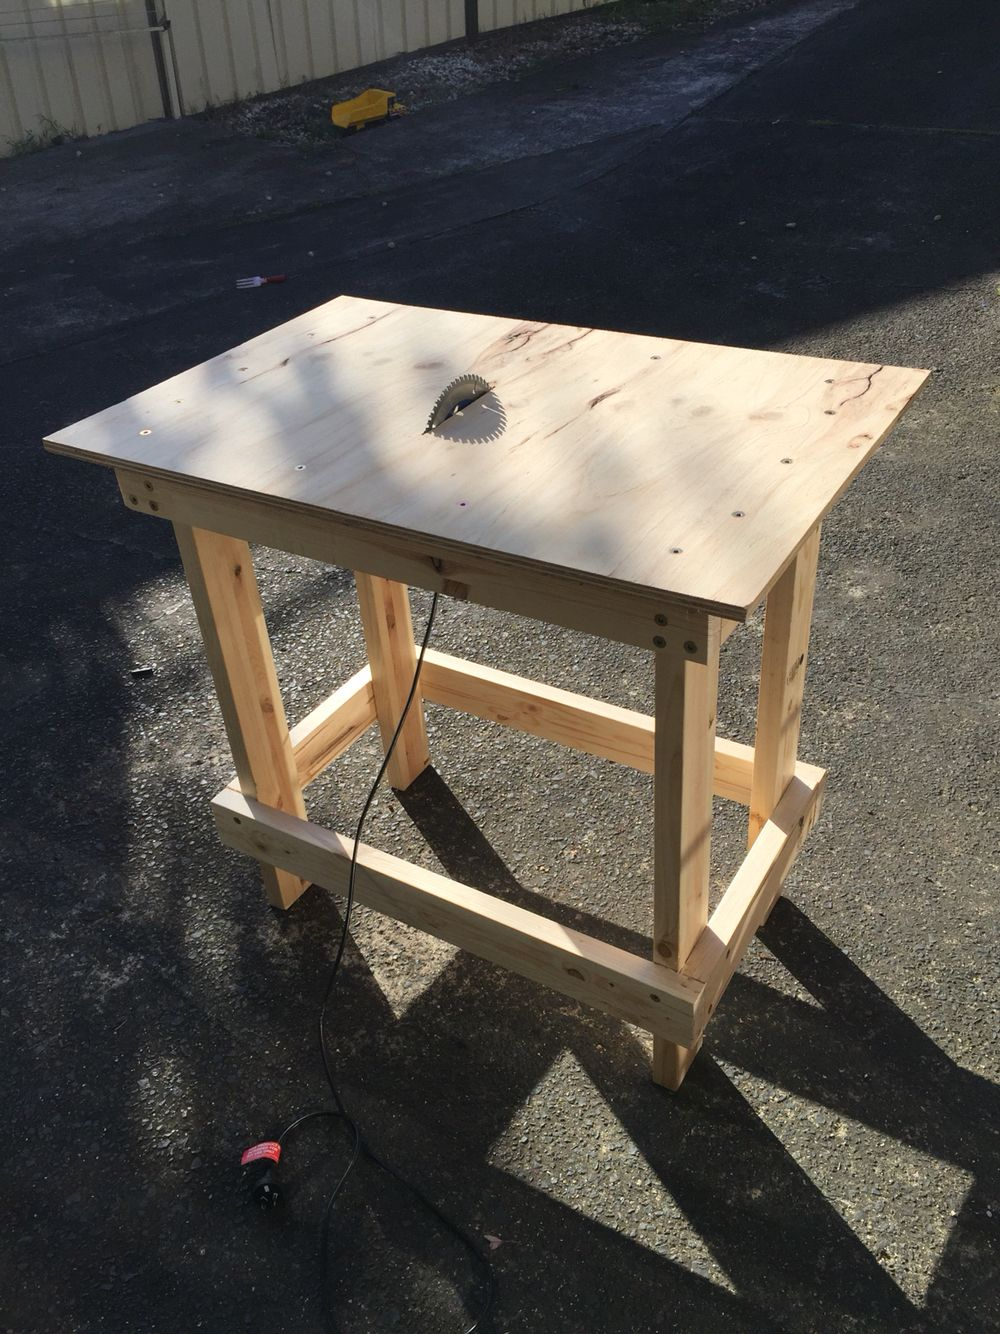 DIY table saw using circular saw \u2026 | Pinteres\u2026